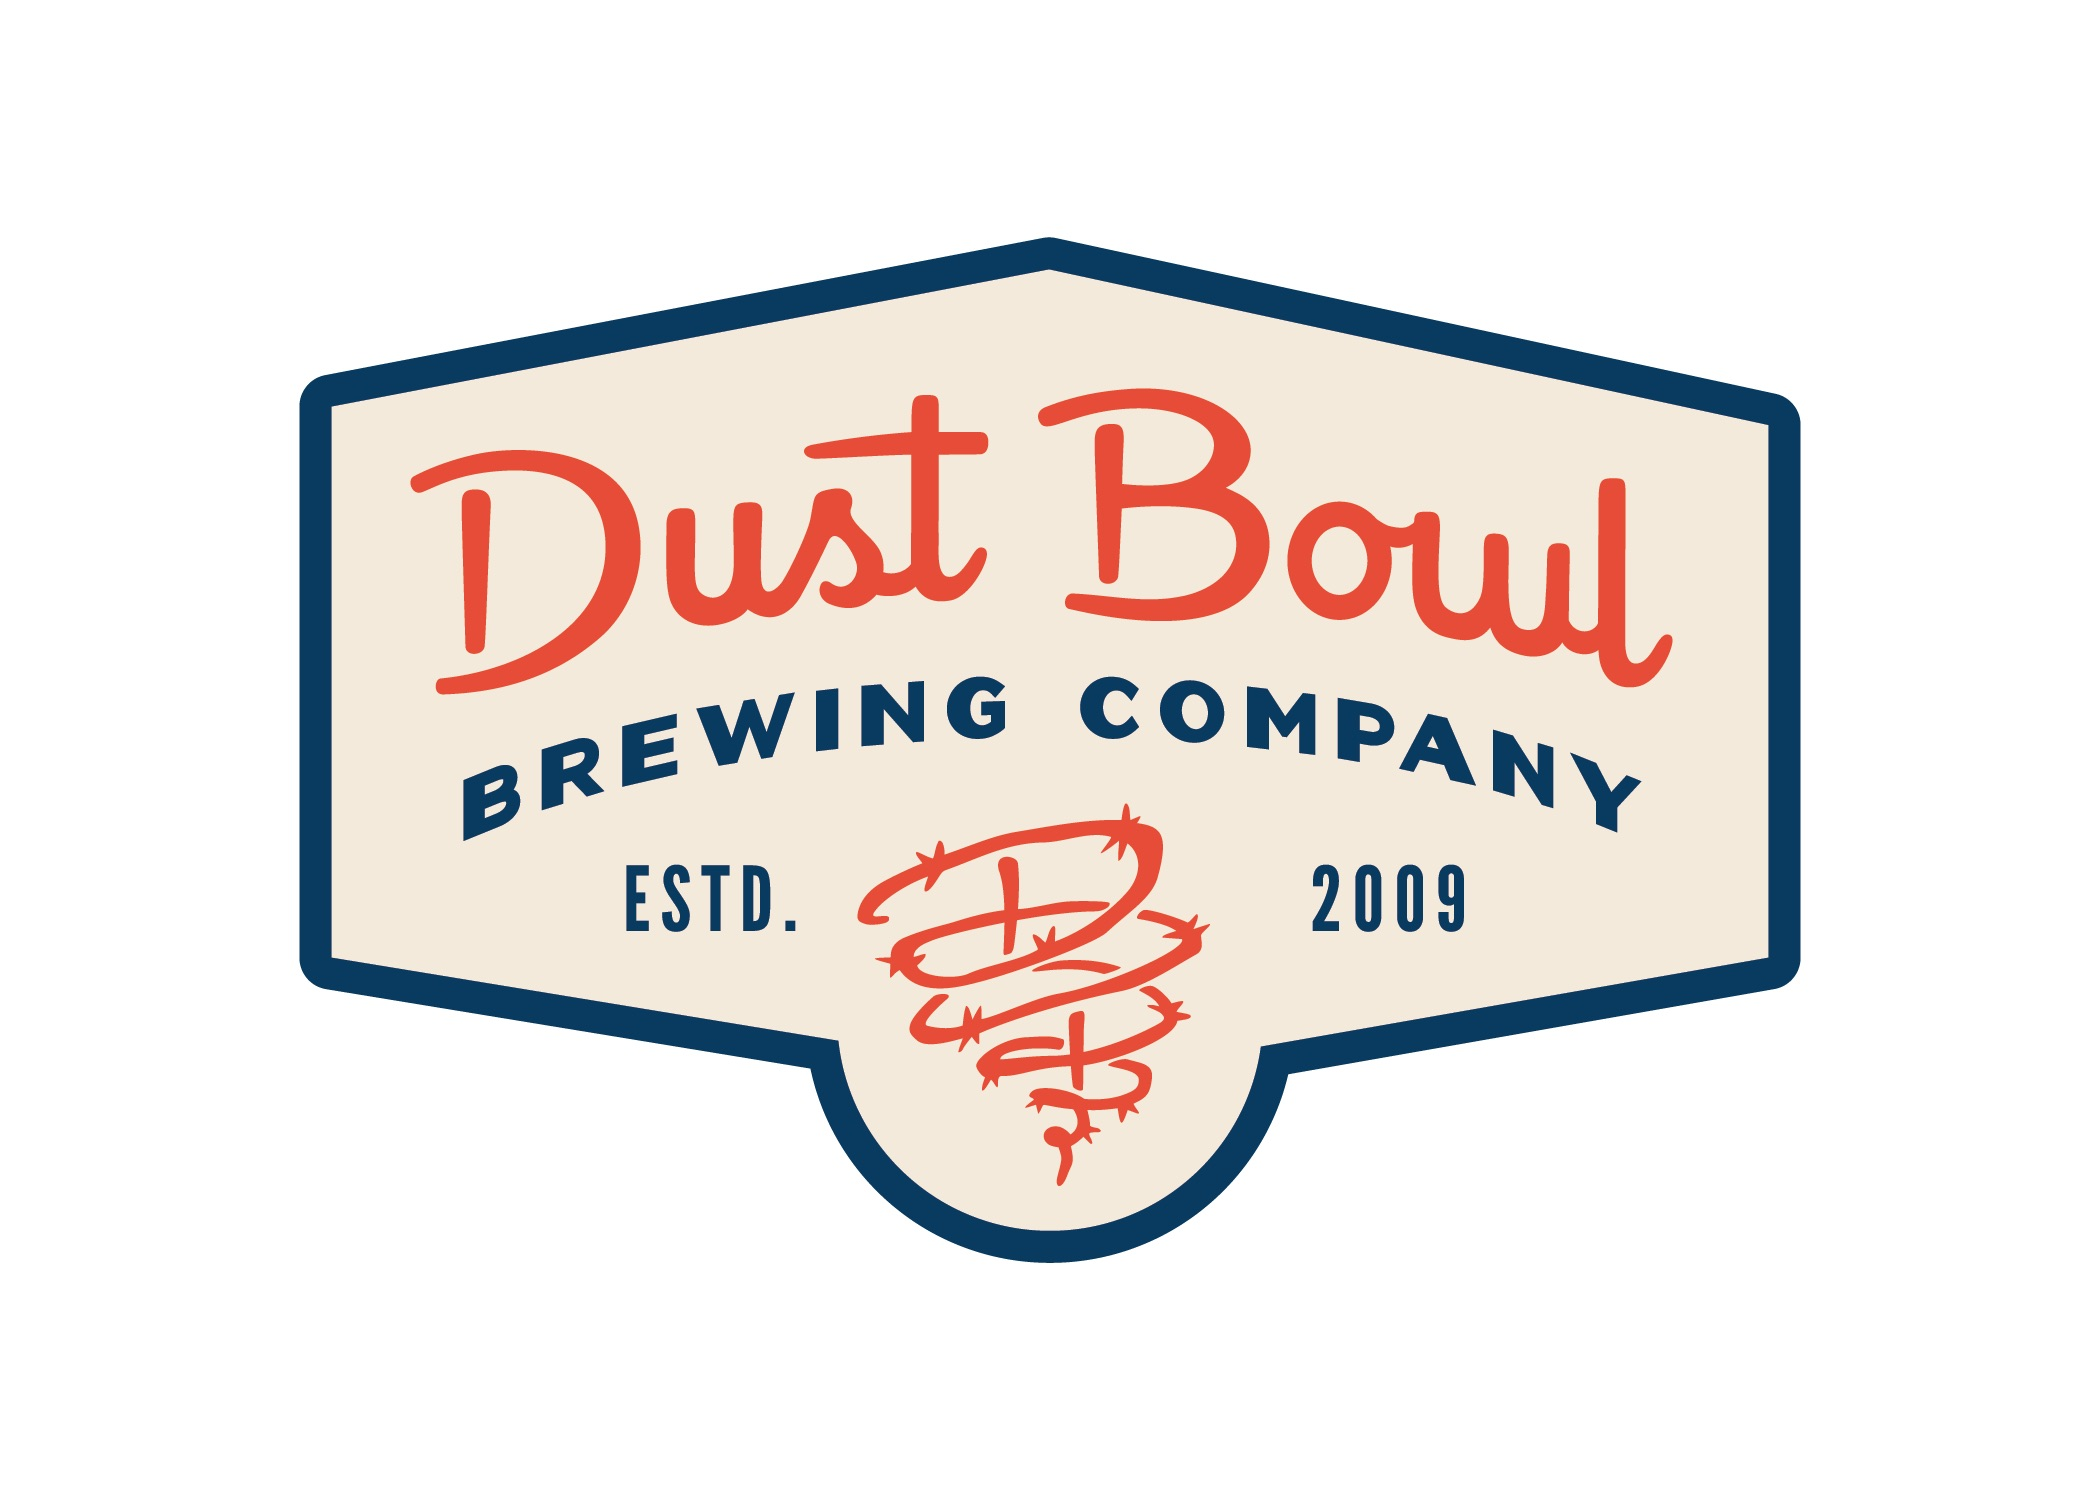 Dust Bowl Brewing Co. Full Color Logo - Scott Chaffee.jpg